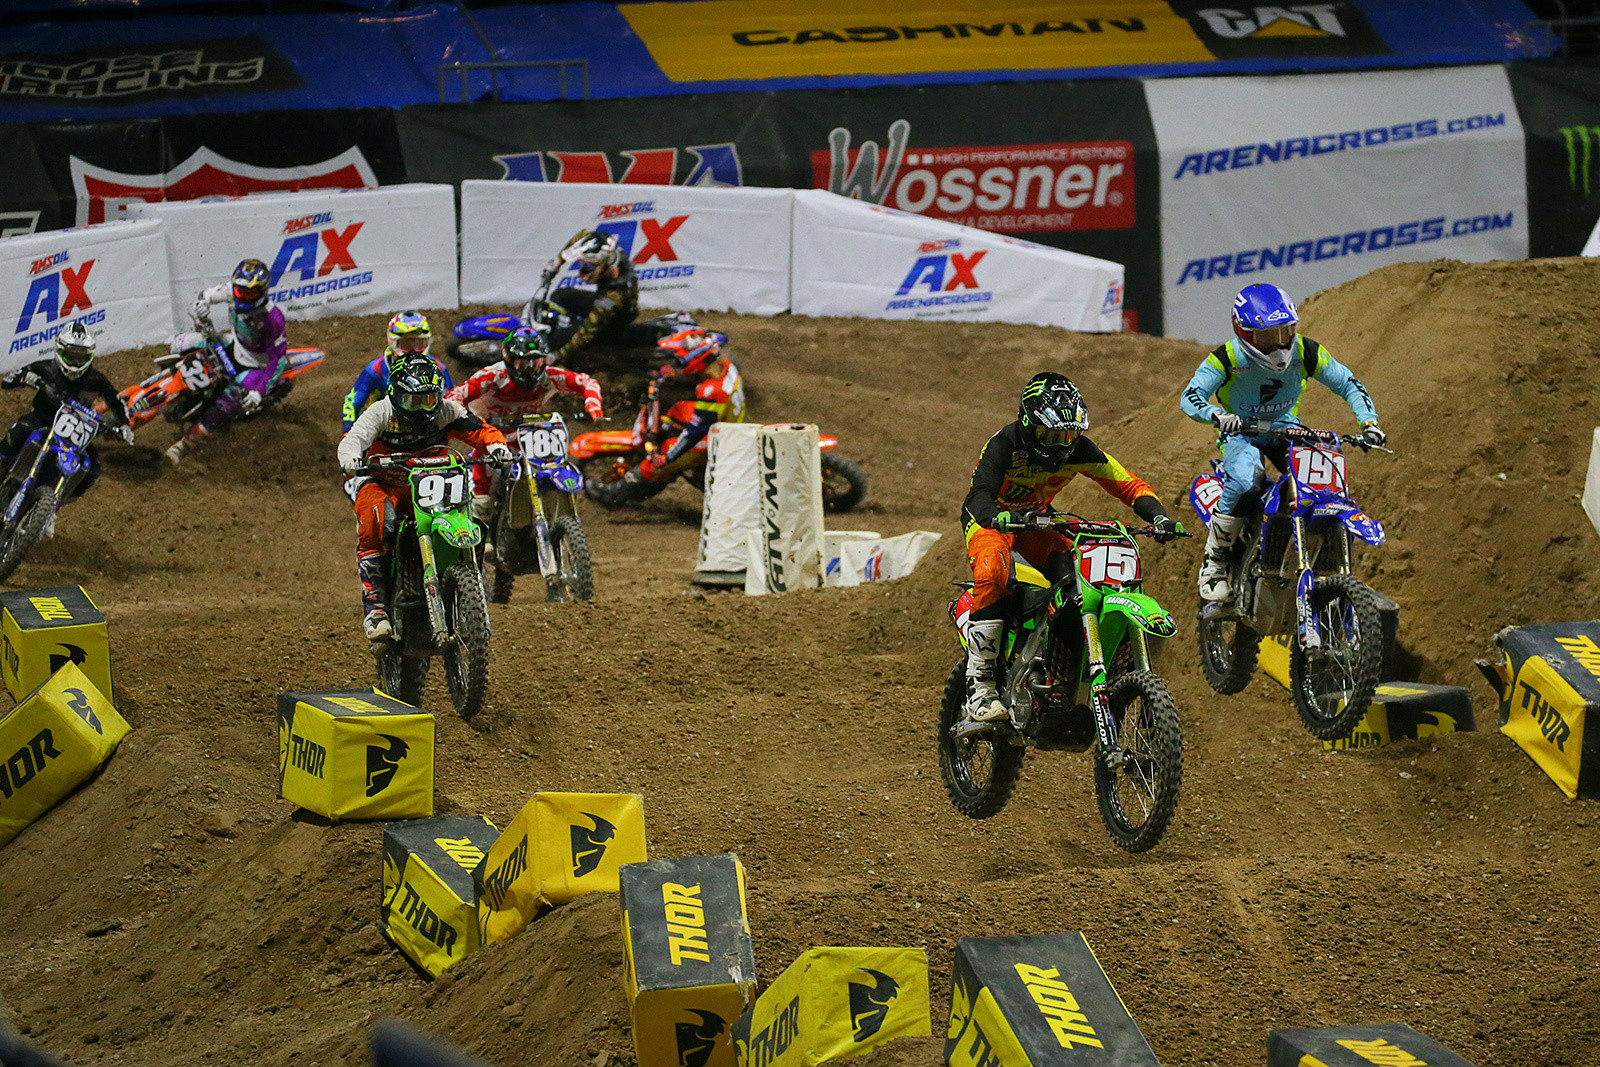 In the AX Lites Class Regional Shootout, Jacob Williamson (91) scored the win, while Ryan Breece (15) grabbed the Western Regional AX Lites Class Championship, and Justin Cooper took home the Eastern Regional AX Lites Class Championship.